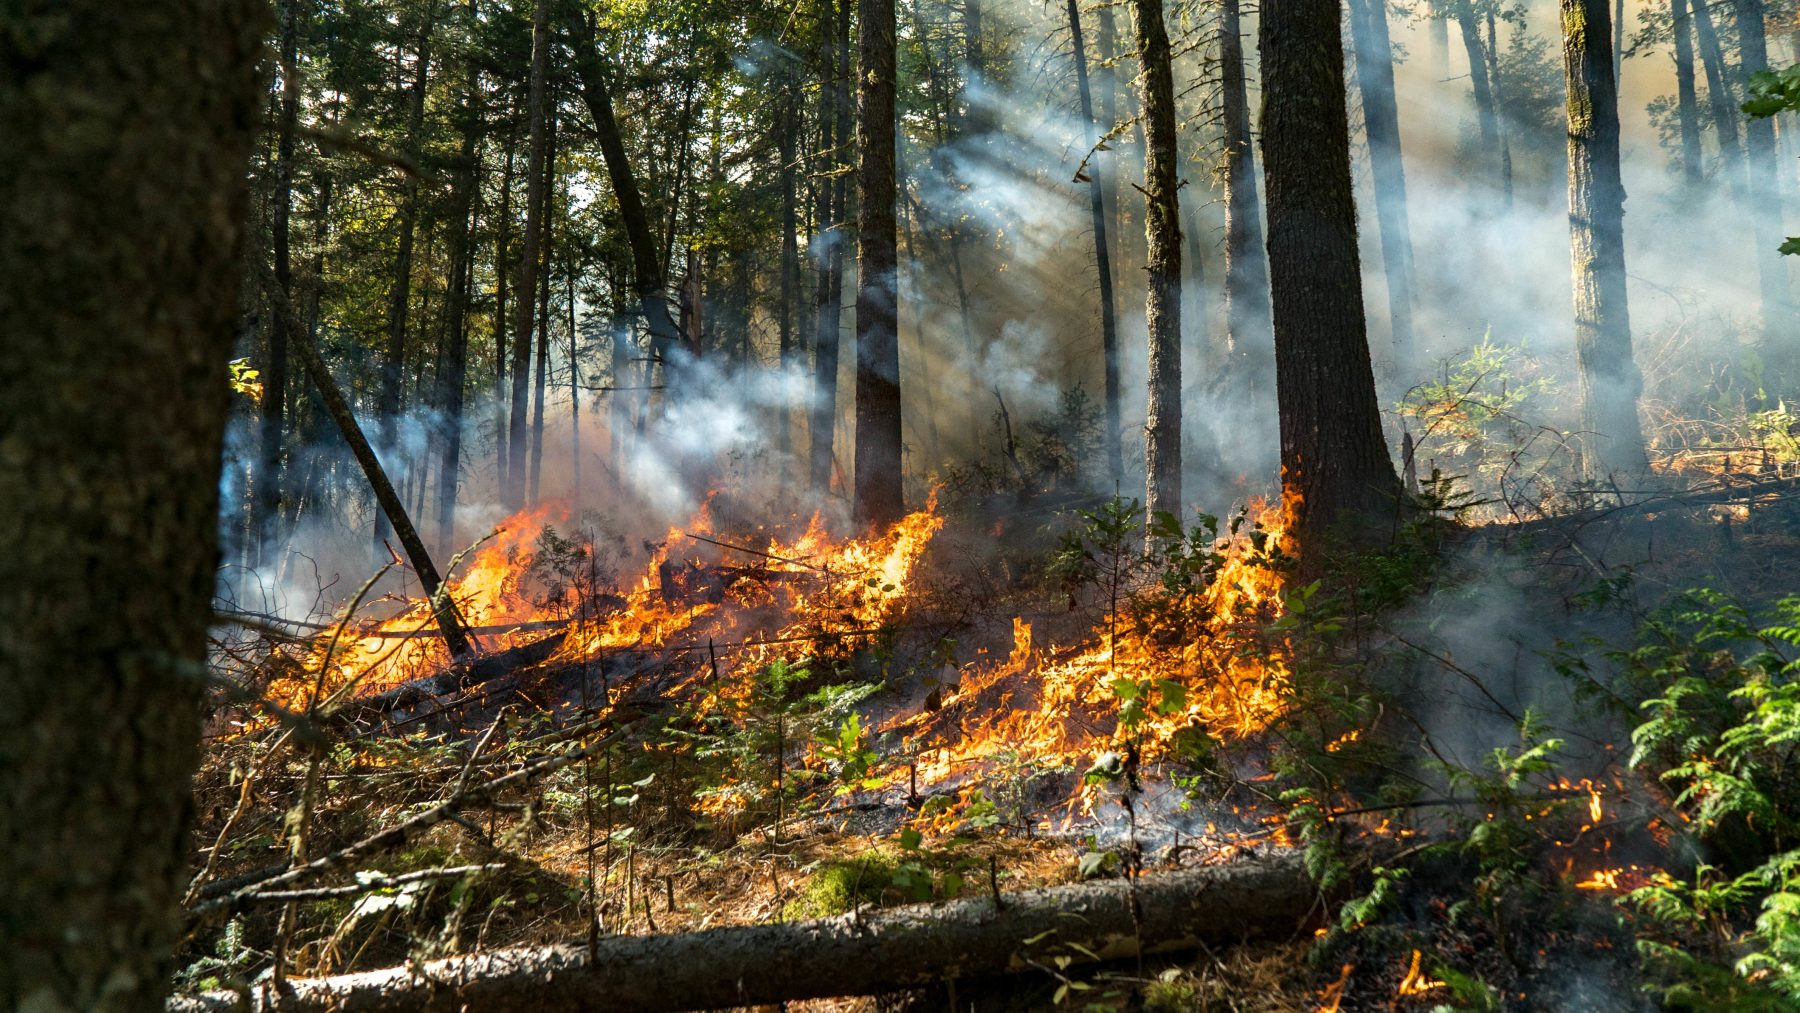 Sweden: Small fires break out due to dry conditions